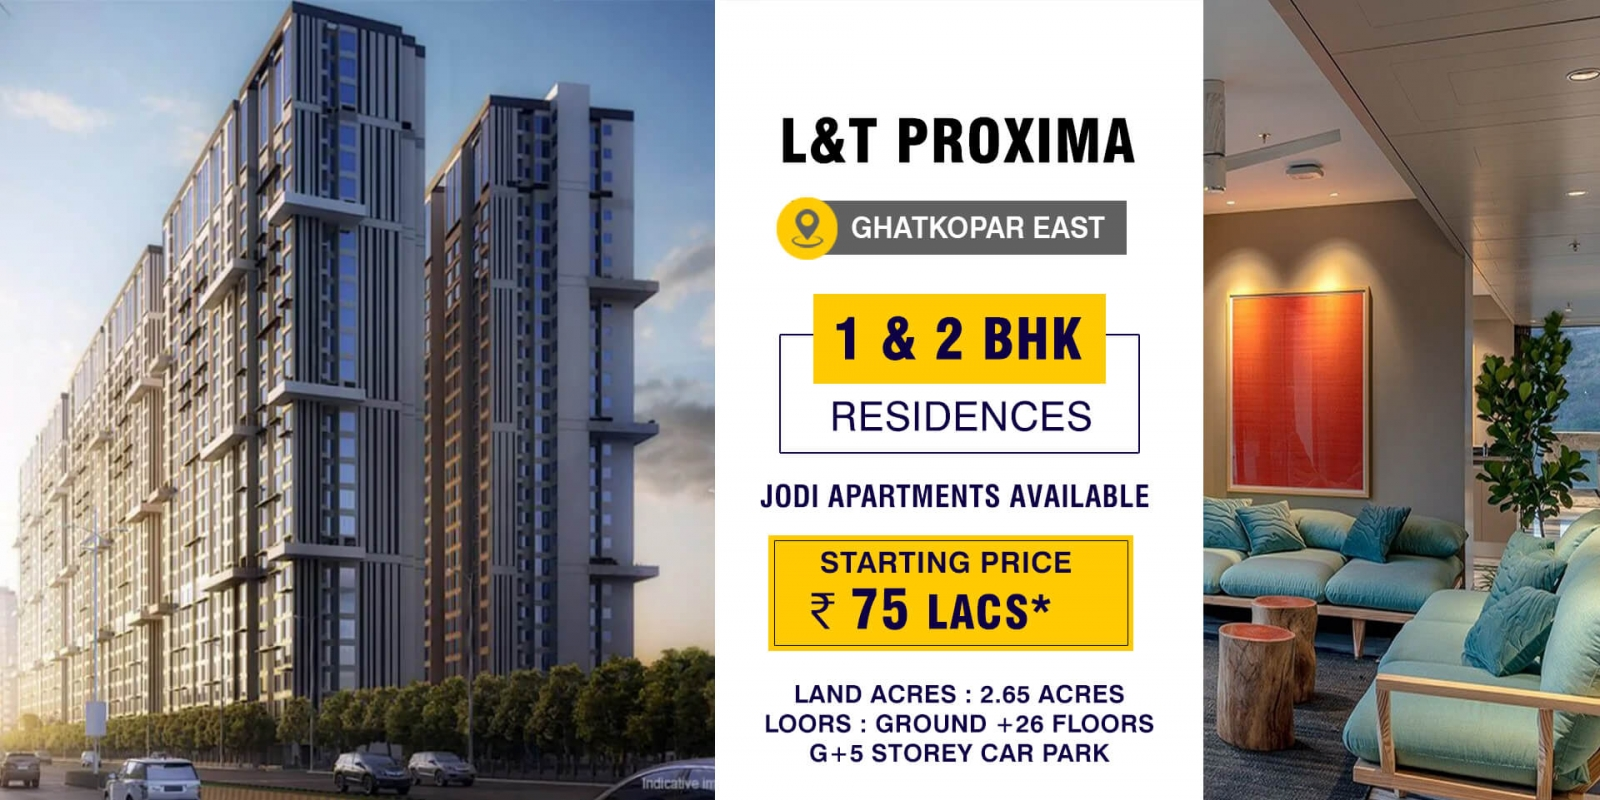 LnT Proxima at Ghatkopar East